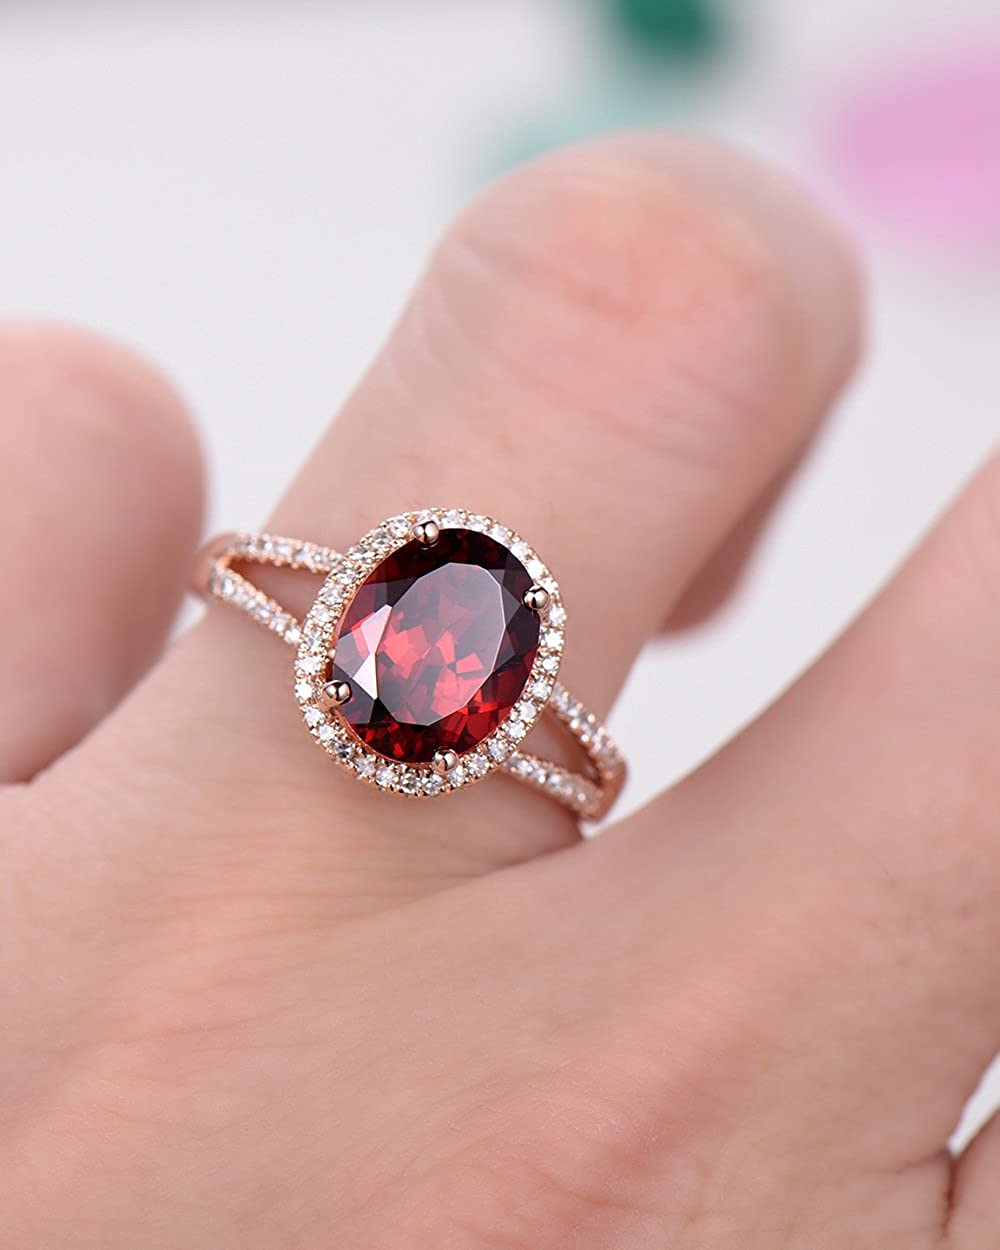 Amazon.com: Red Garnet Engagement Ring Oval 925 Sterling Silver Rose ...